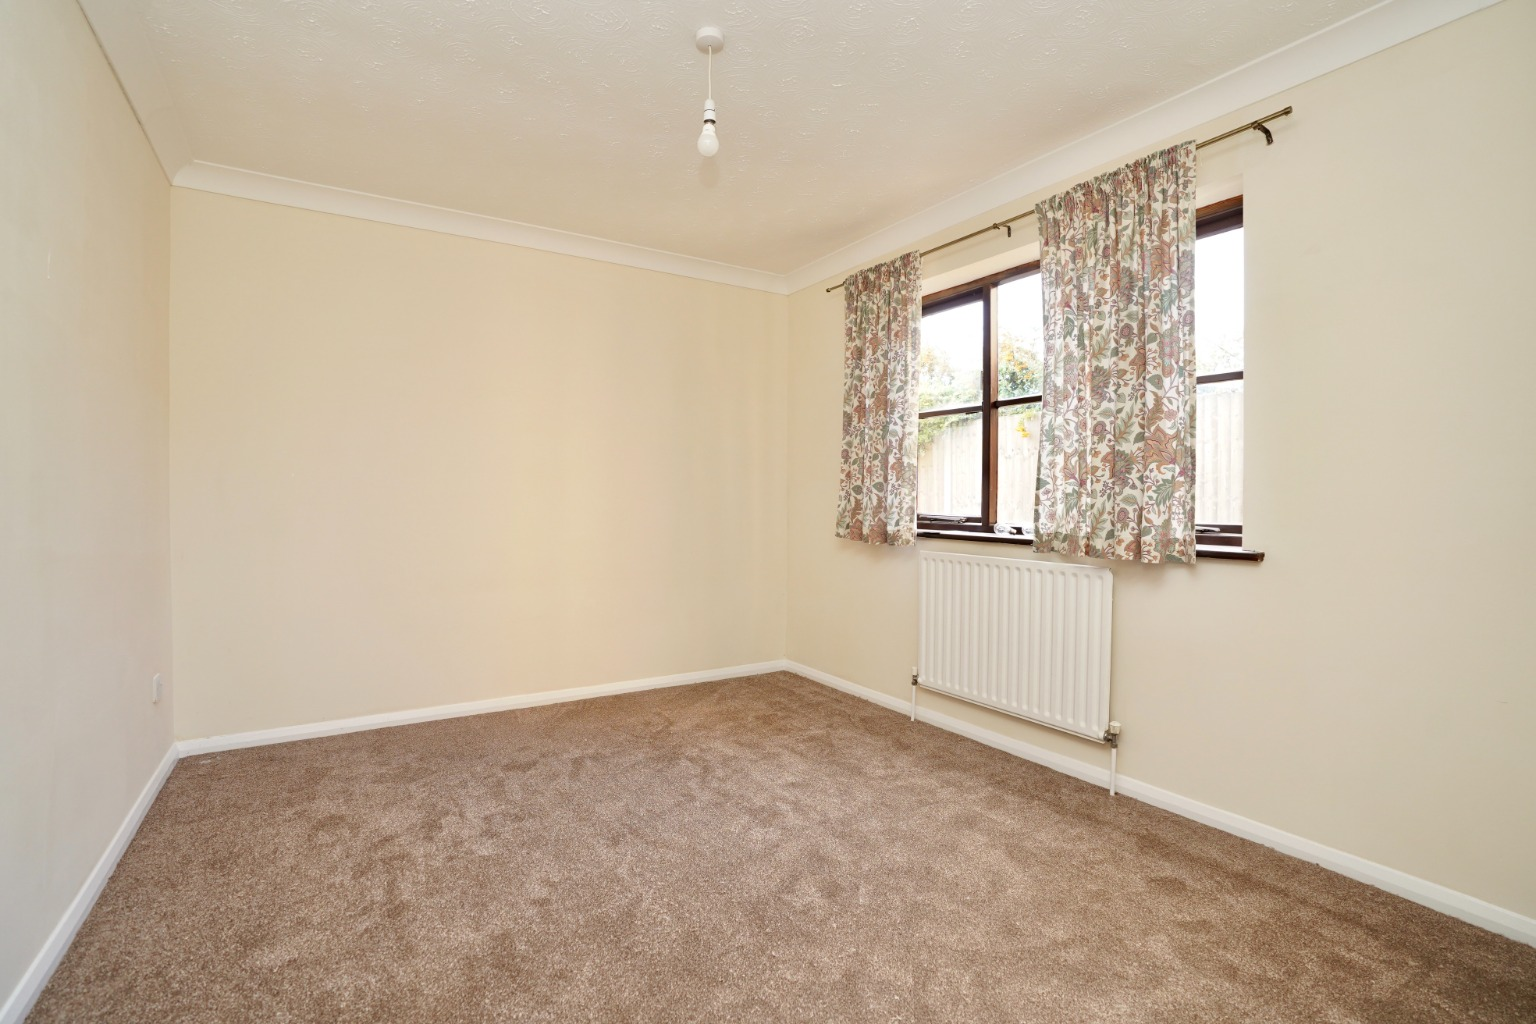 2 bed ground floor maisonette for sale in Rose Court, St. Neots Road, St. Neots 3